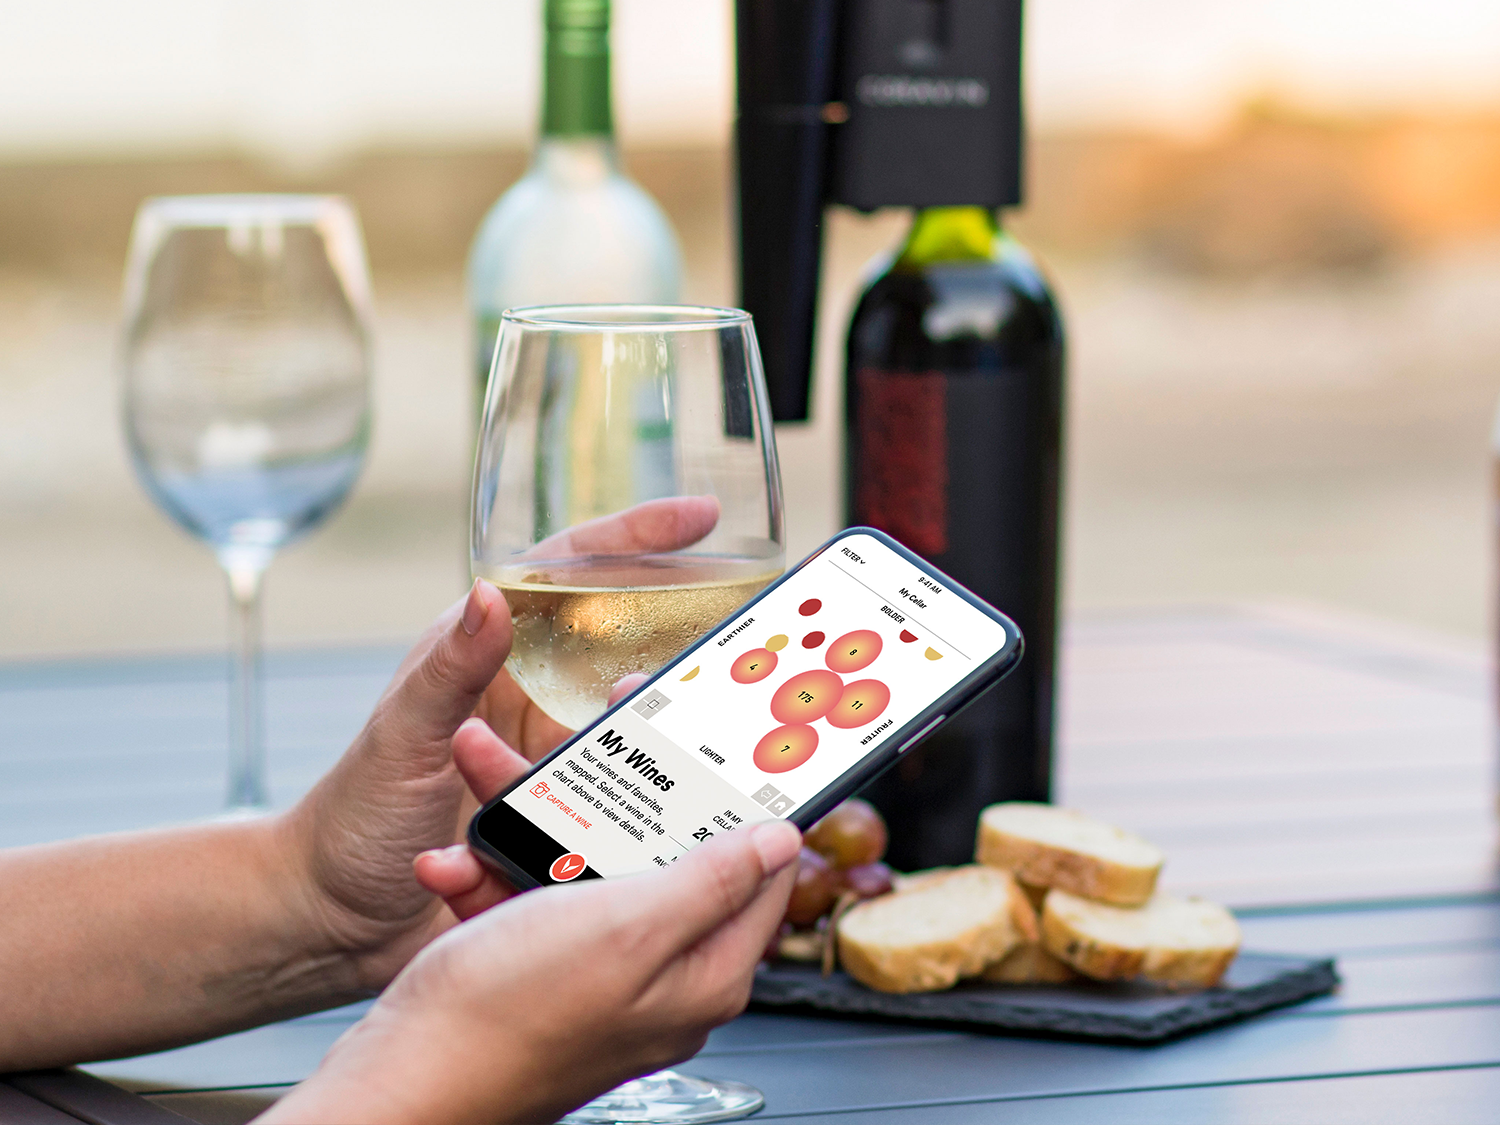 A person holding a glass of wine and a phone that features the Coravin Moments App flavor map screen, with the Coravin Model Eleven Wine Preservation System on bottle in the background.